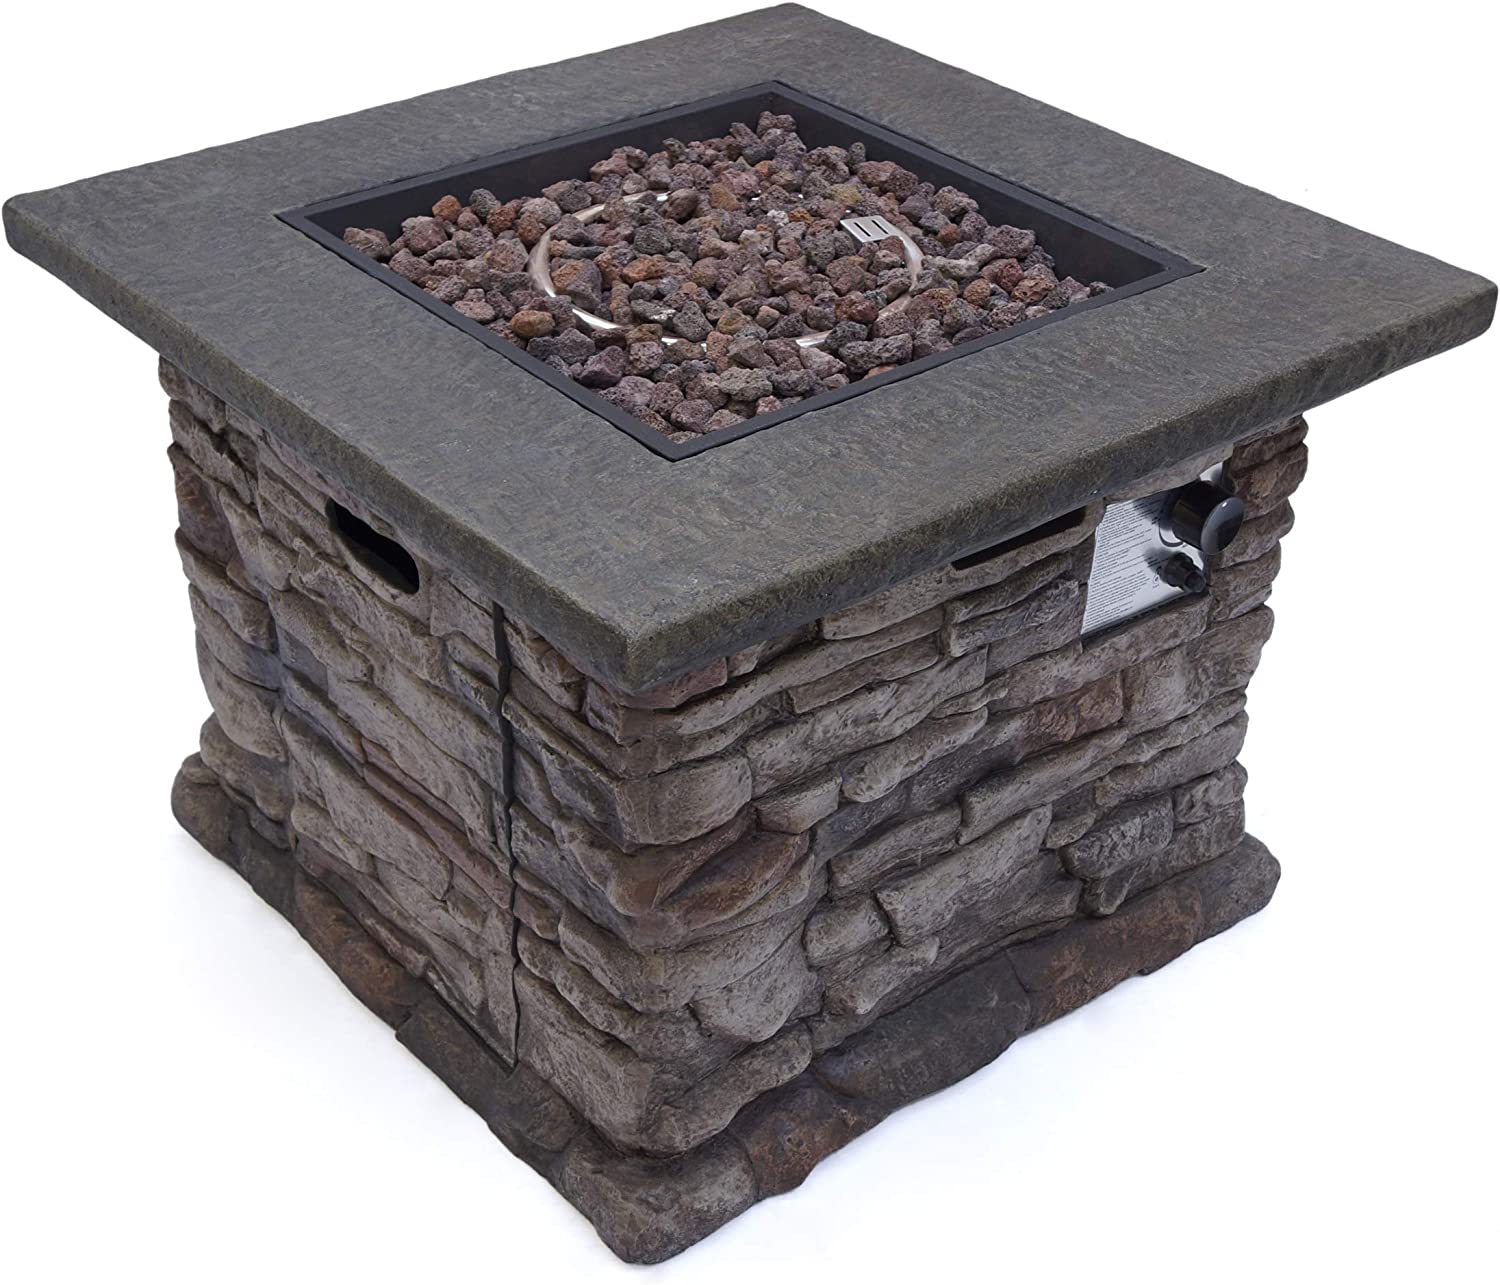 Christopher Knight Home Stone Outdoor Natural Stone Finished Square Fire Pit – 40,000 BTU